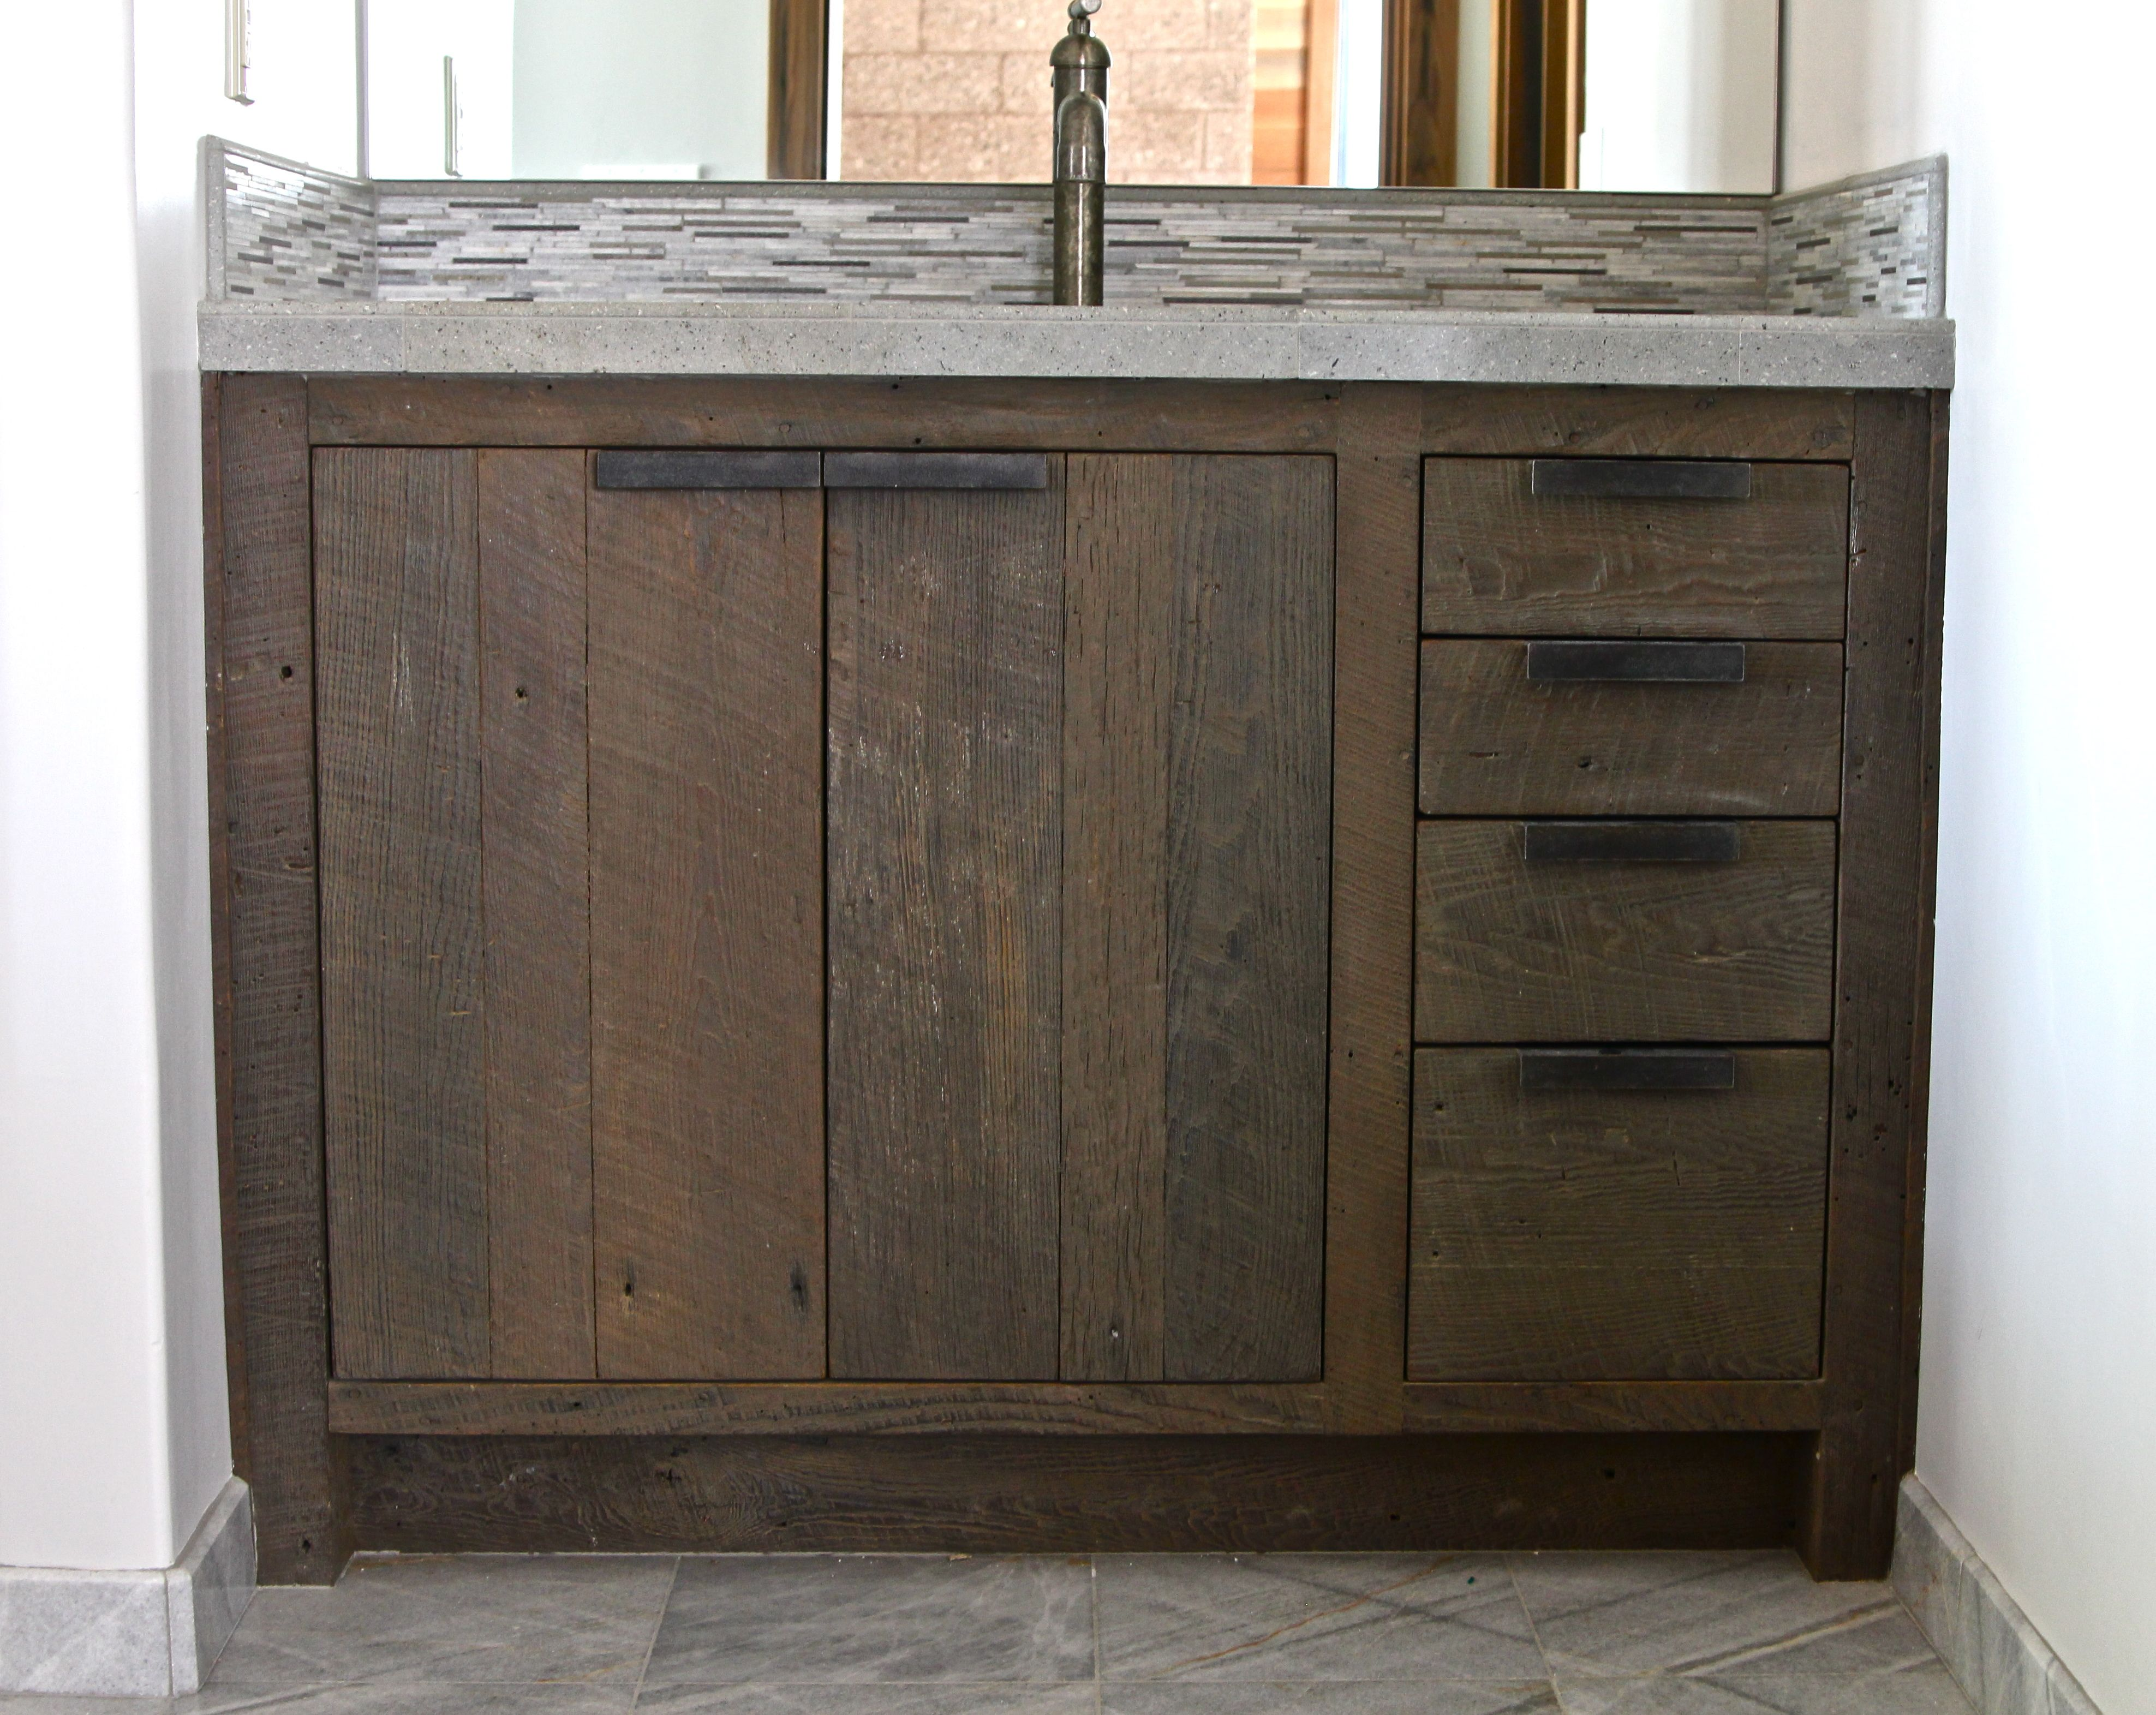 Drawer Pulls Bathroom Ideas Diy Vanity With Solid Wood Base Unfinished Work Oil Rubbed Bronze Faucet For Rustic